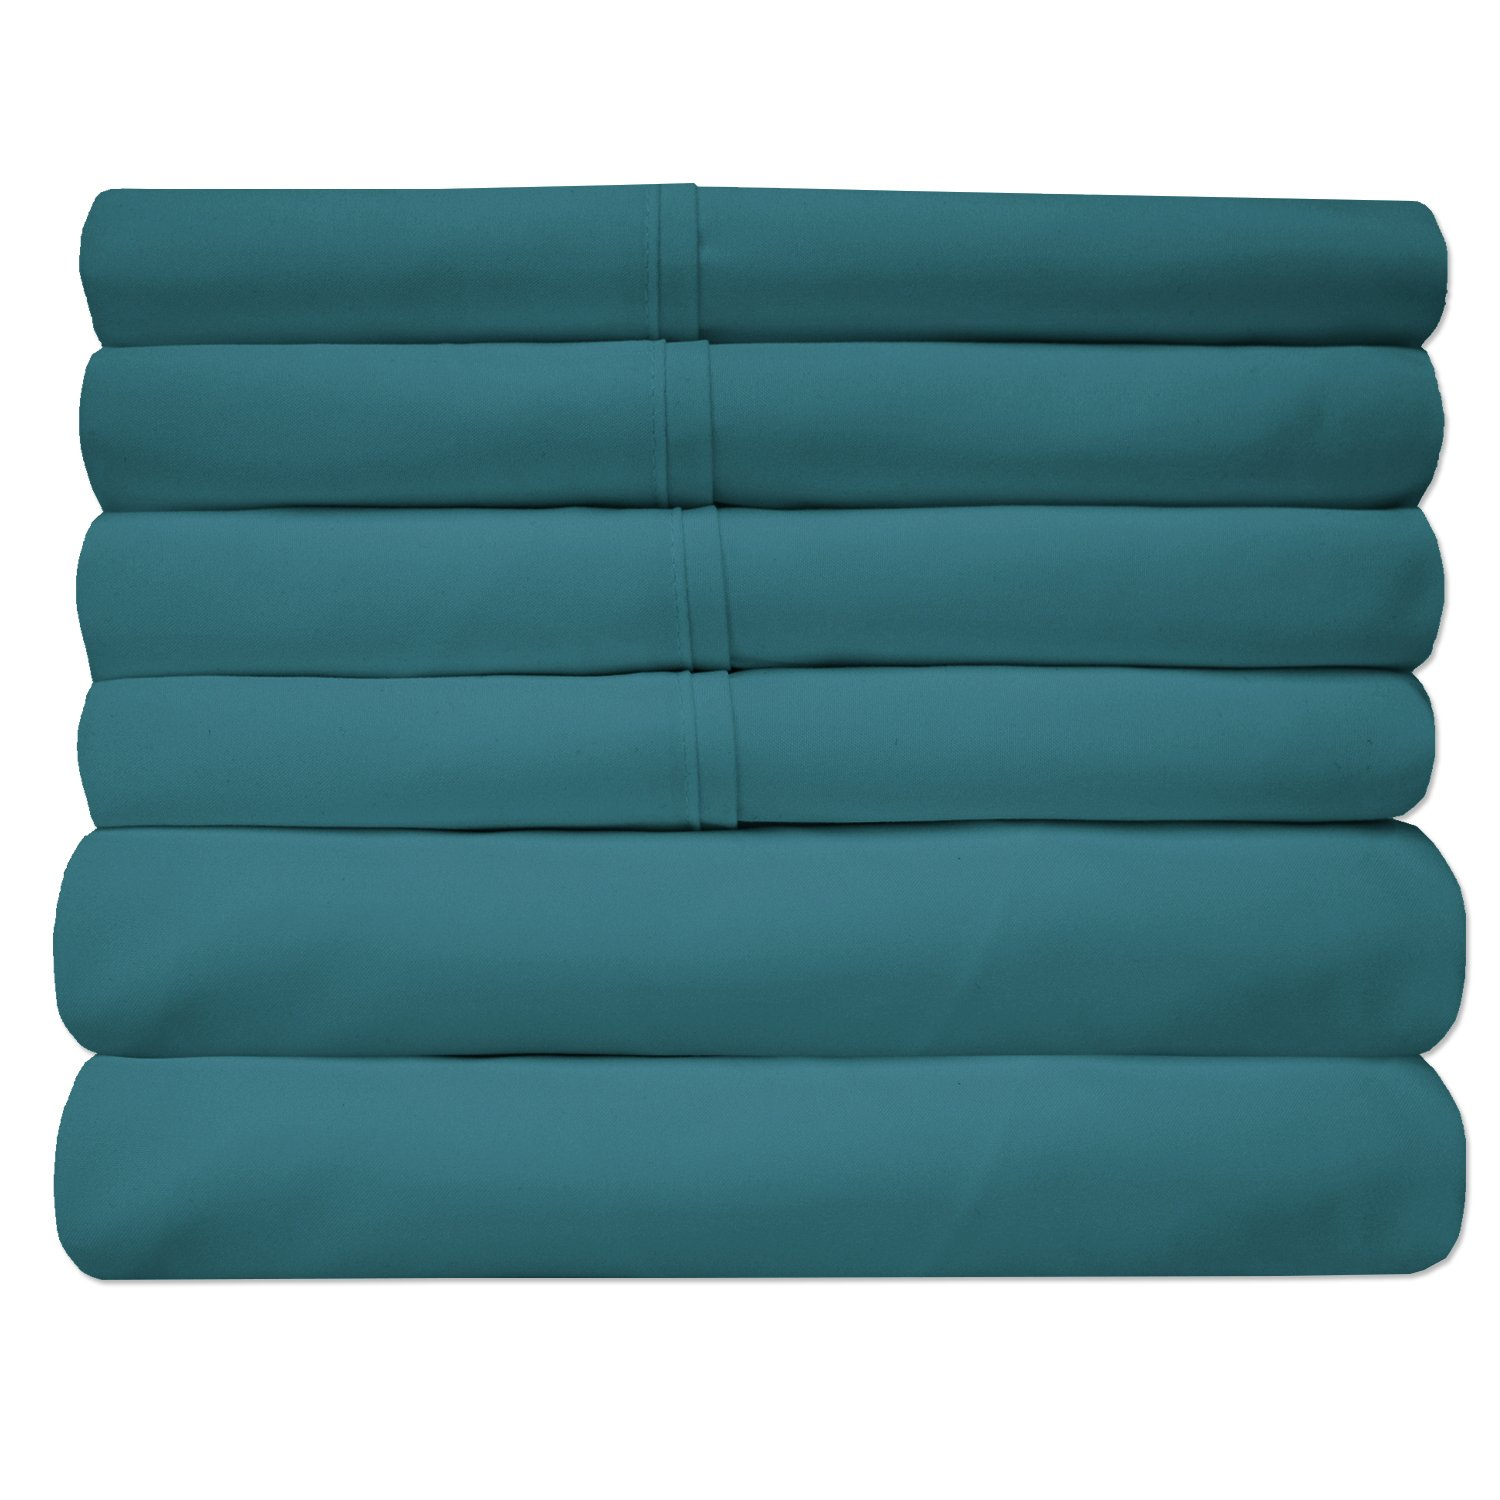 Sweet Home Collection Quality Deep Pocket Bed Sheet Set-2 Extra Pillow Cases, Great Value, Queen, Teal, 6 Piece